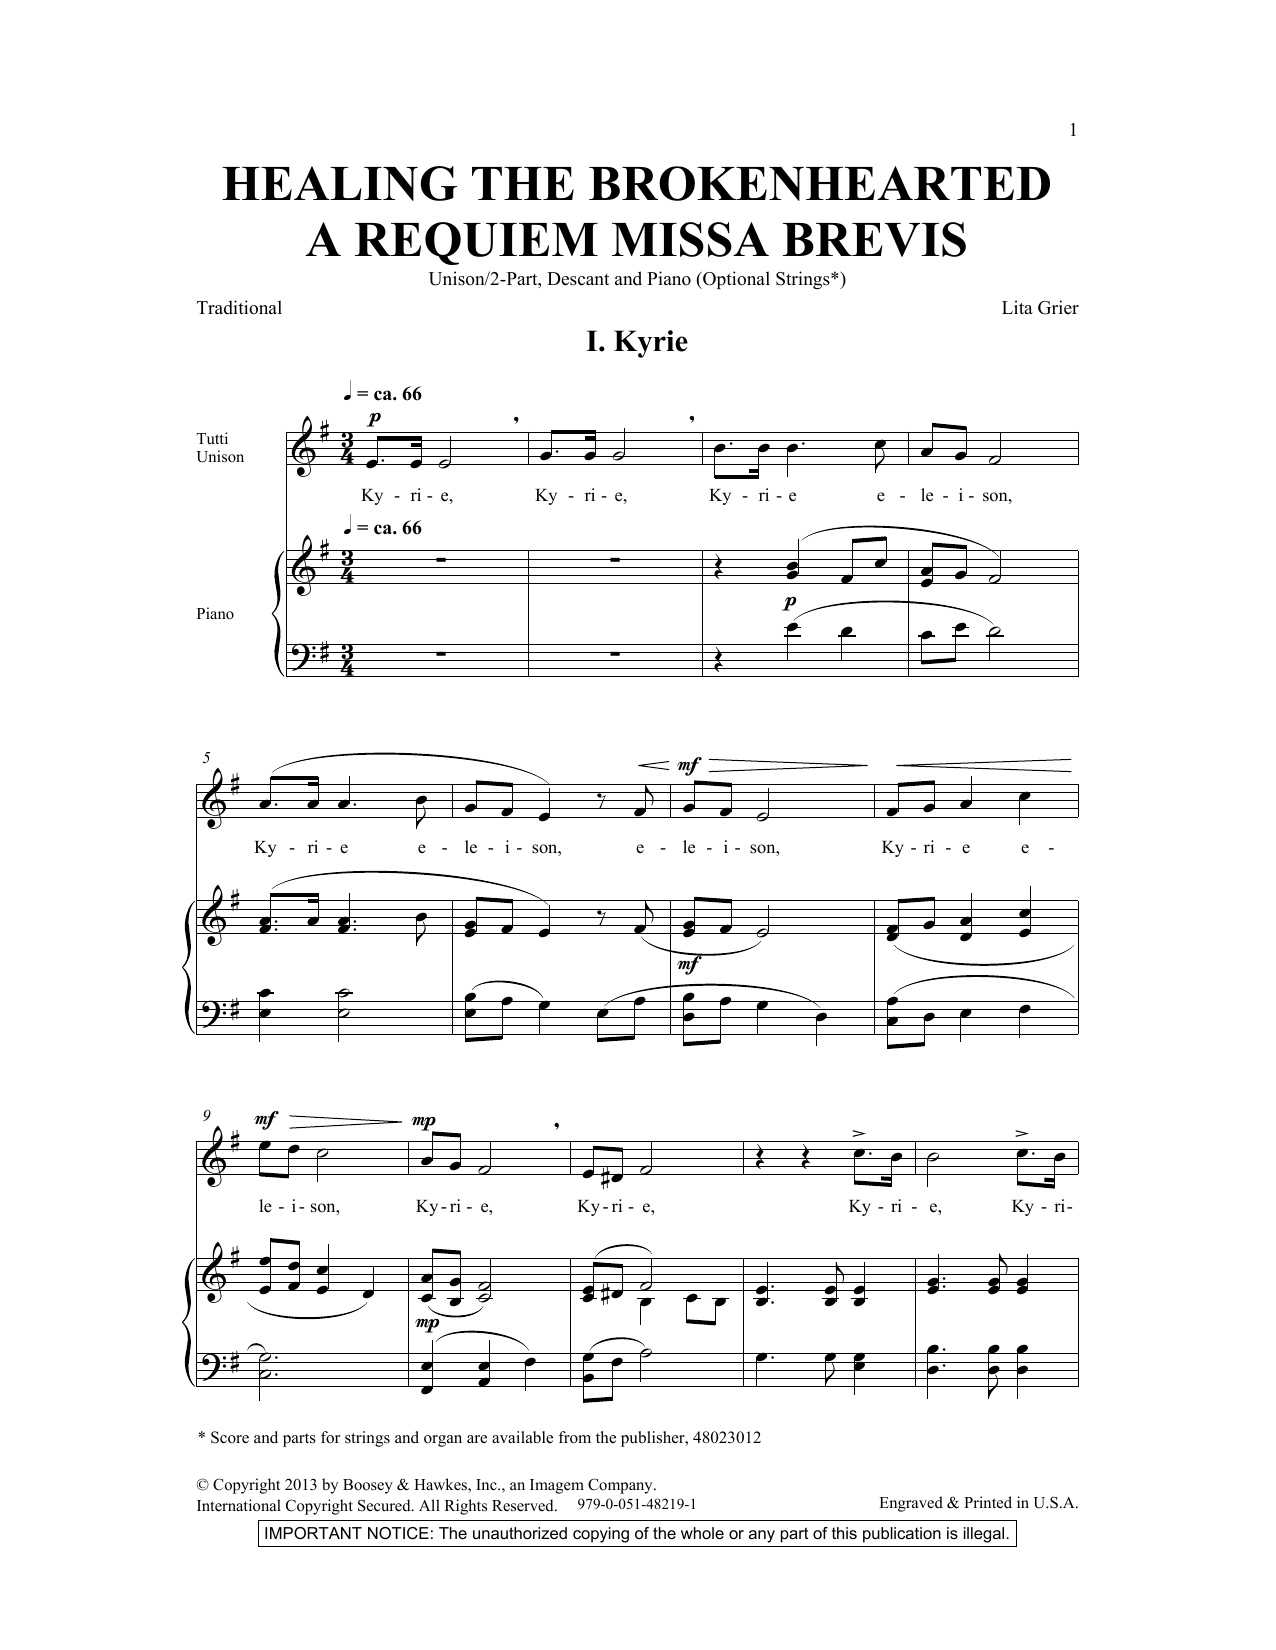 Healing The Brokenhearted (A Requiem Missa Brevis) Sheet Music